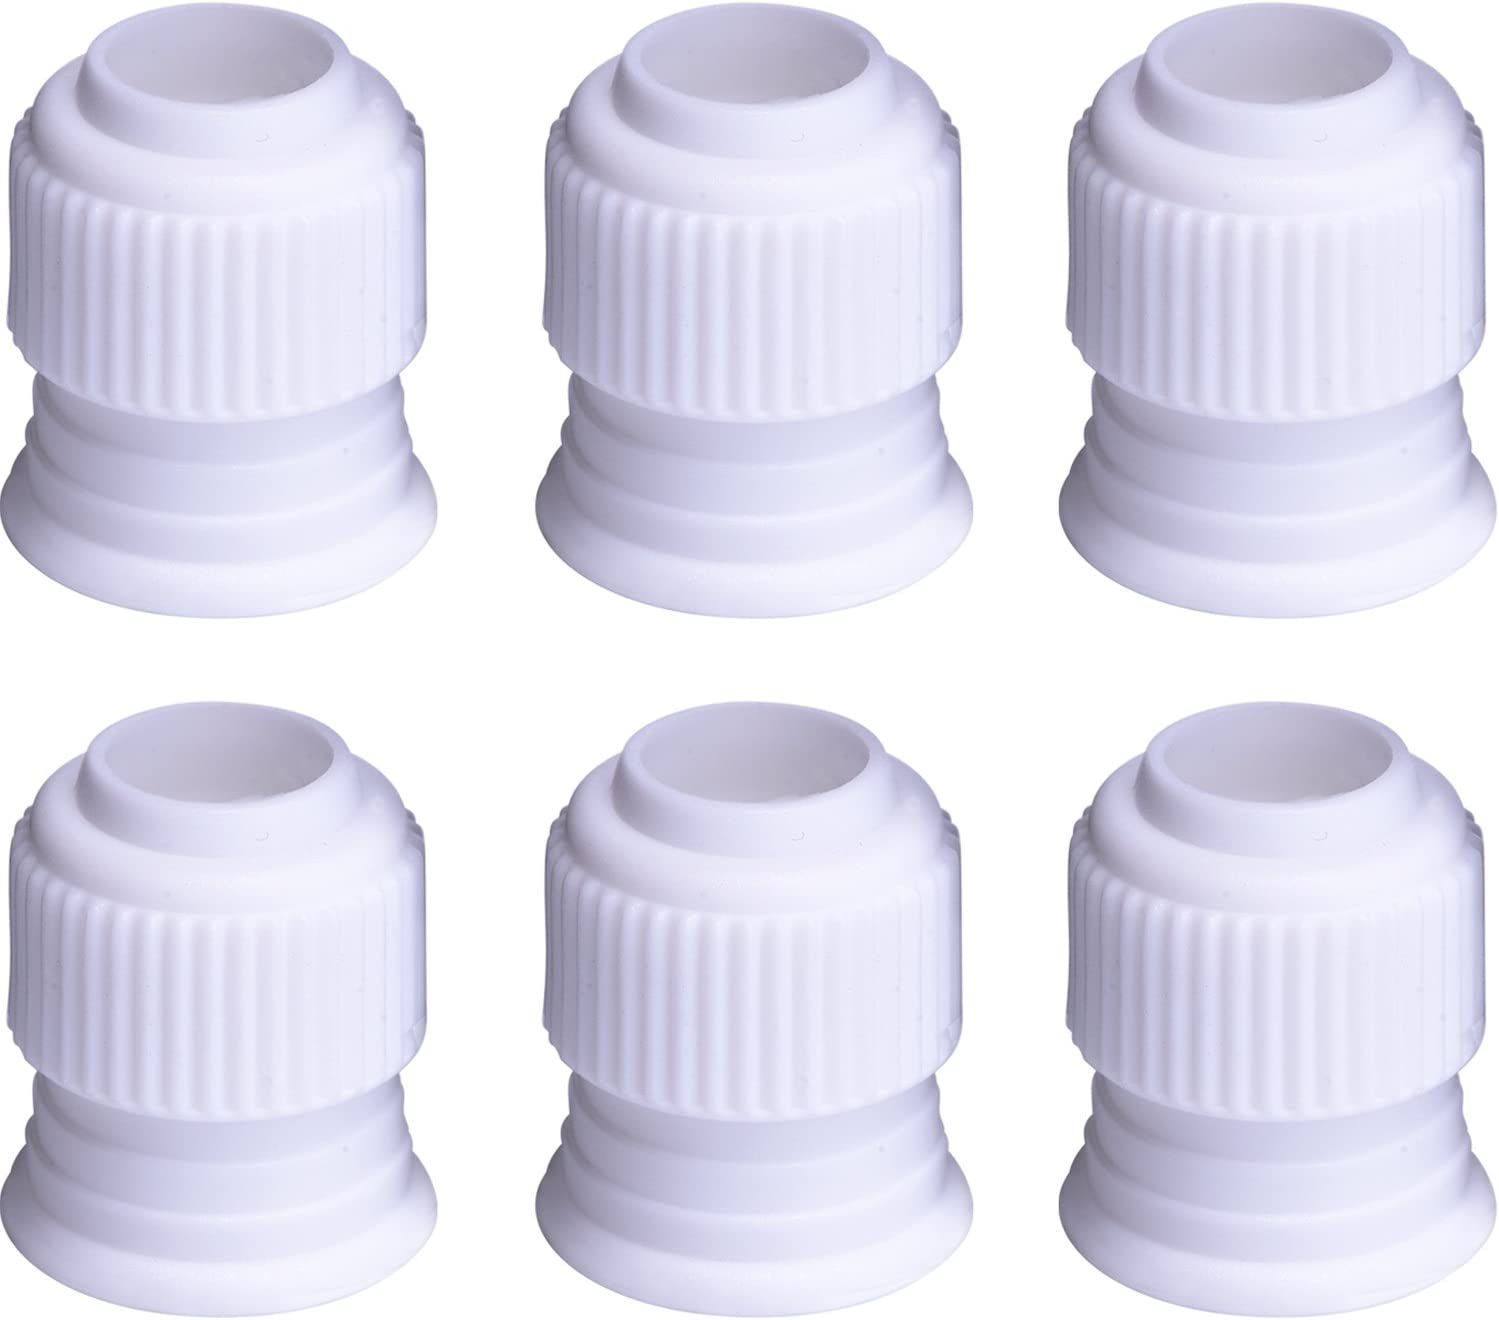 Shappy Plastic Standard Couplers Cake Decorating Coupler Pipe Tip Coupler for Icing Nozzles, White (6 Pack)